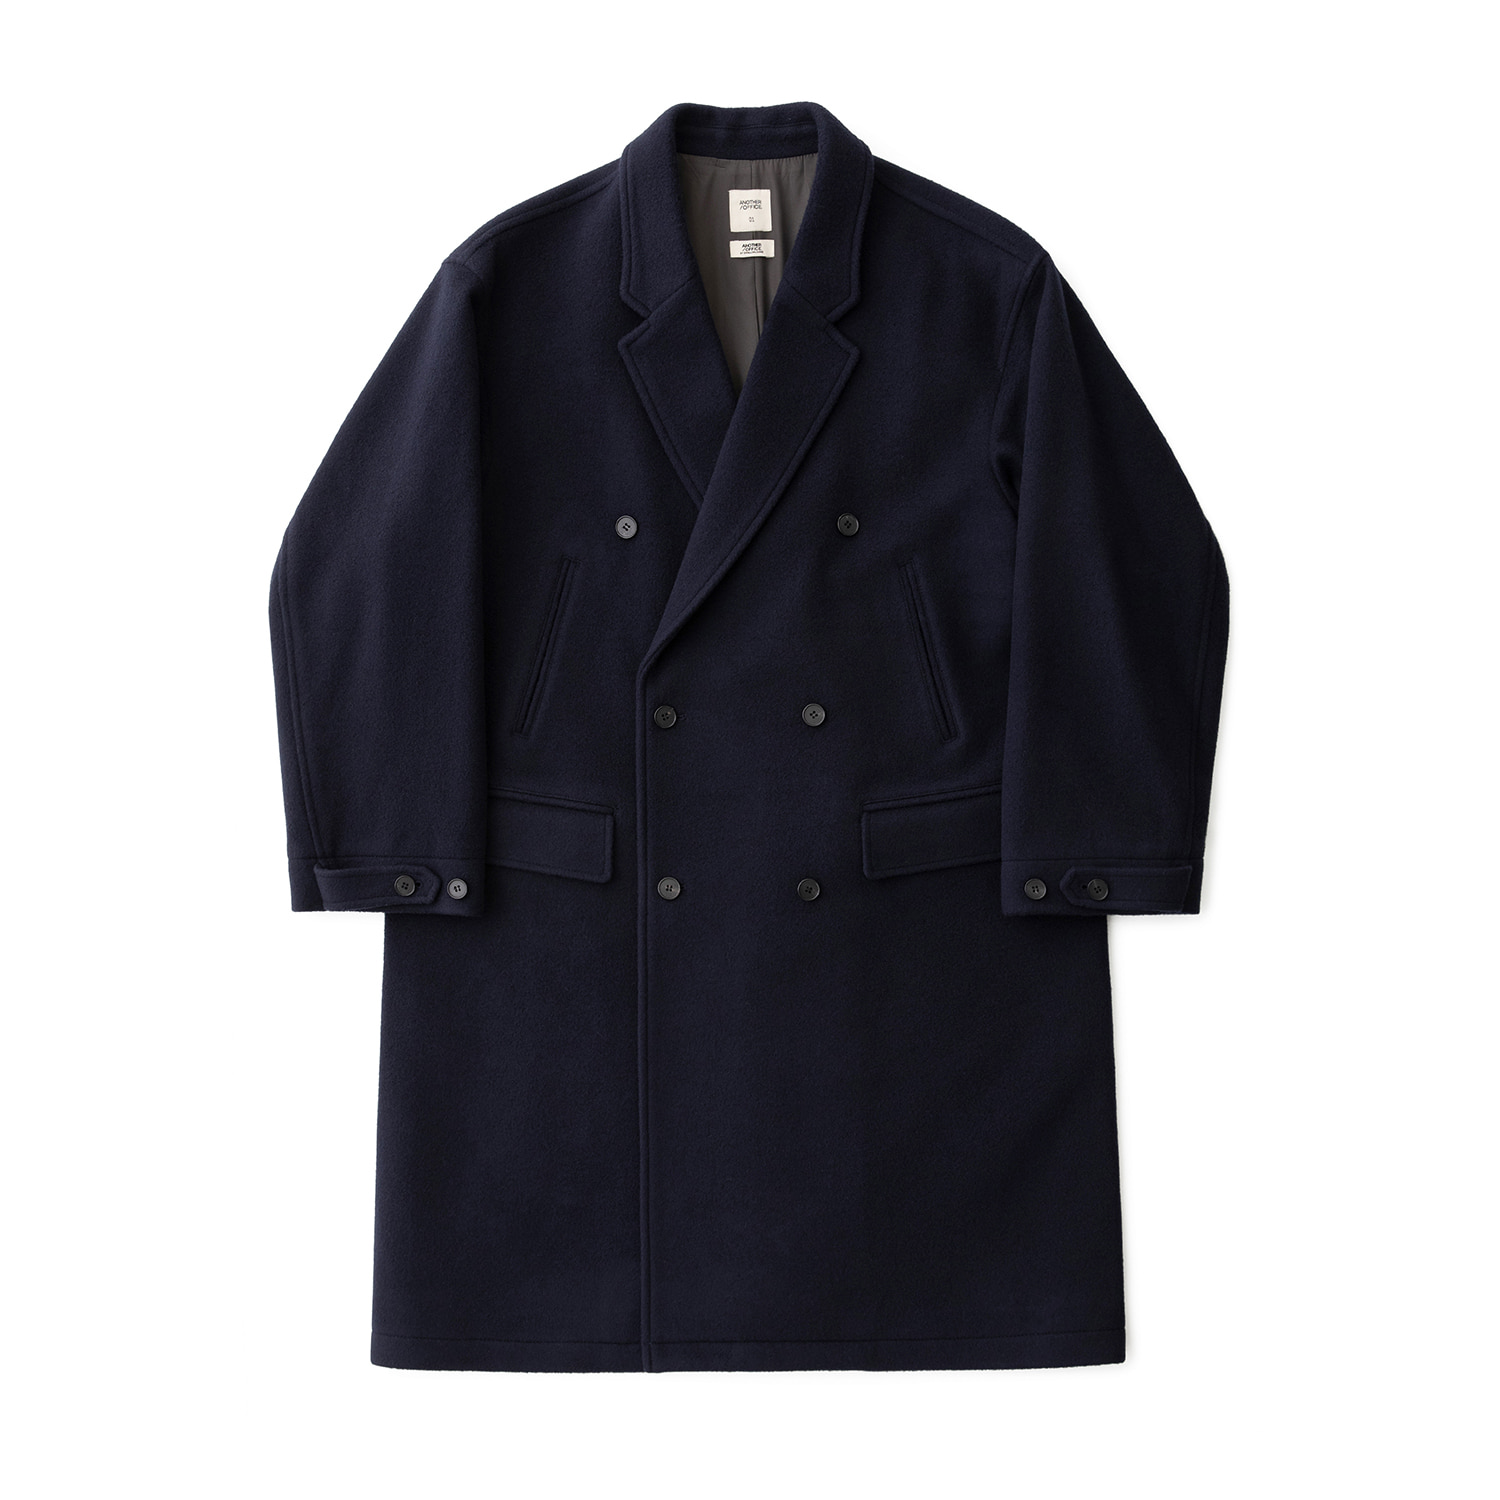 Plenty Mosser Double Coat (Solid Navy)